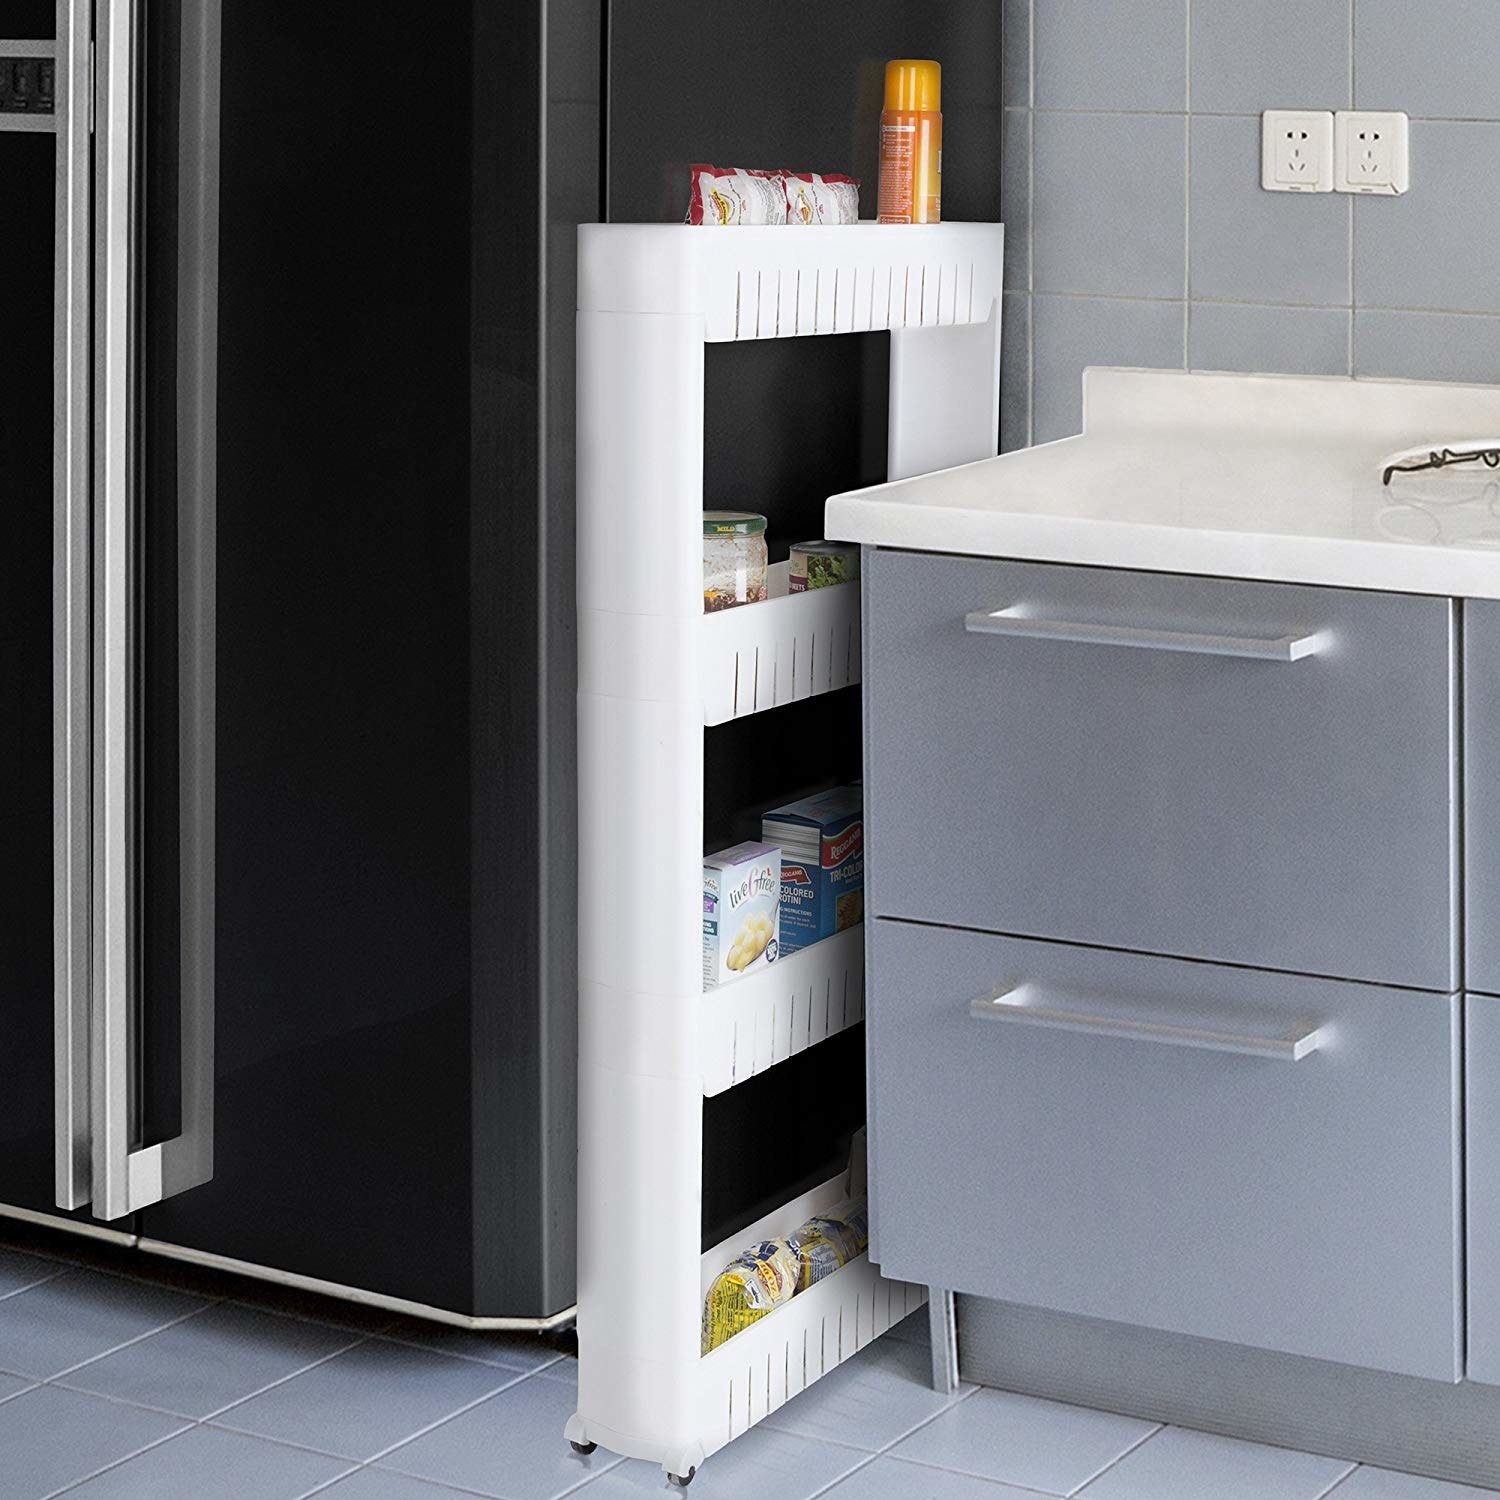 A tall, thing storage unit with four tiers placed between a refrigerator door and a counter top